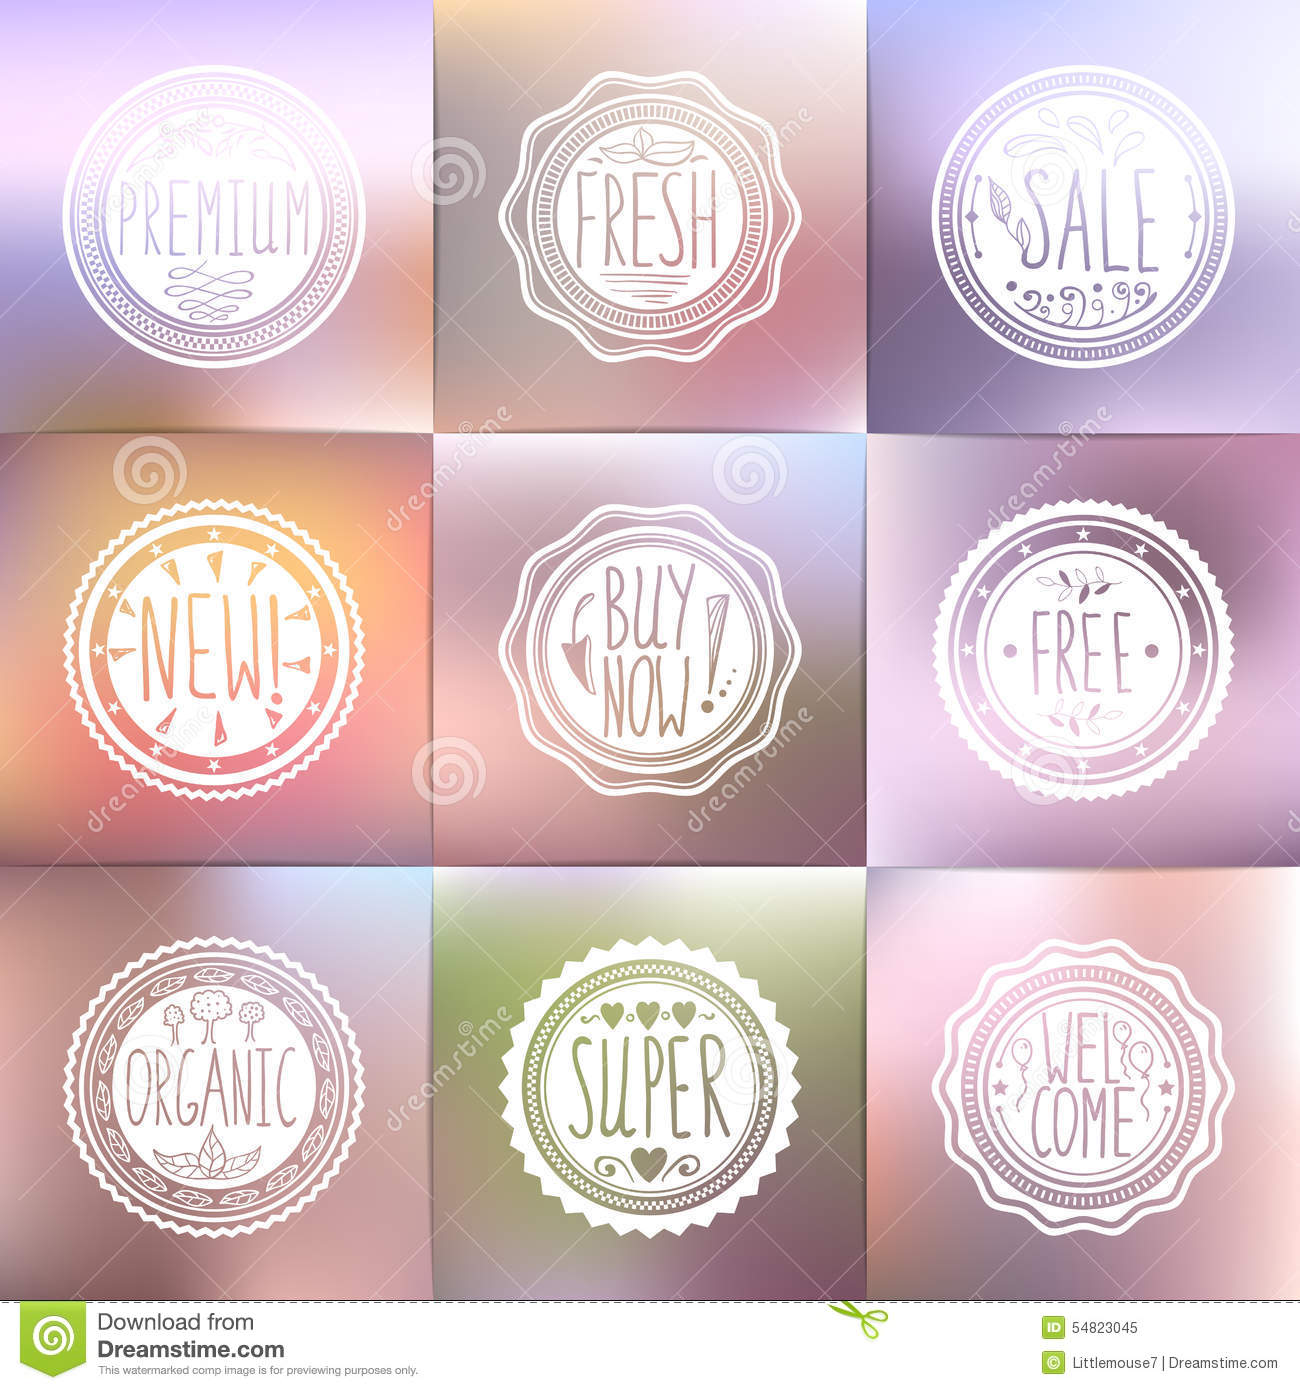 Set of vintage badges and blurred backgrounds. Hand-drawn lettering